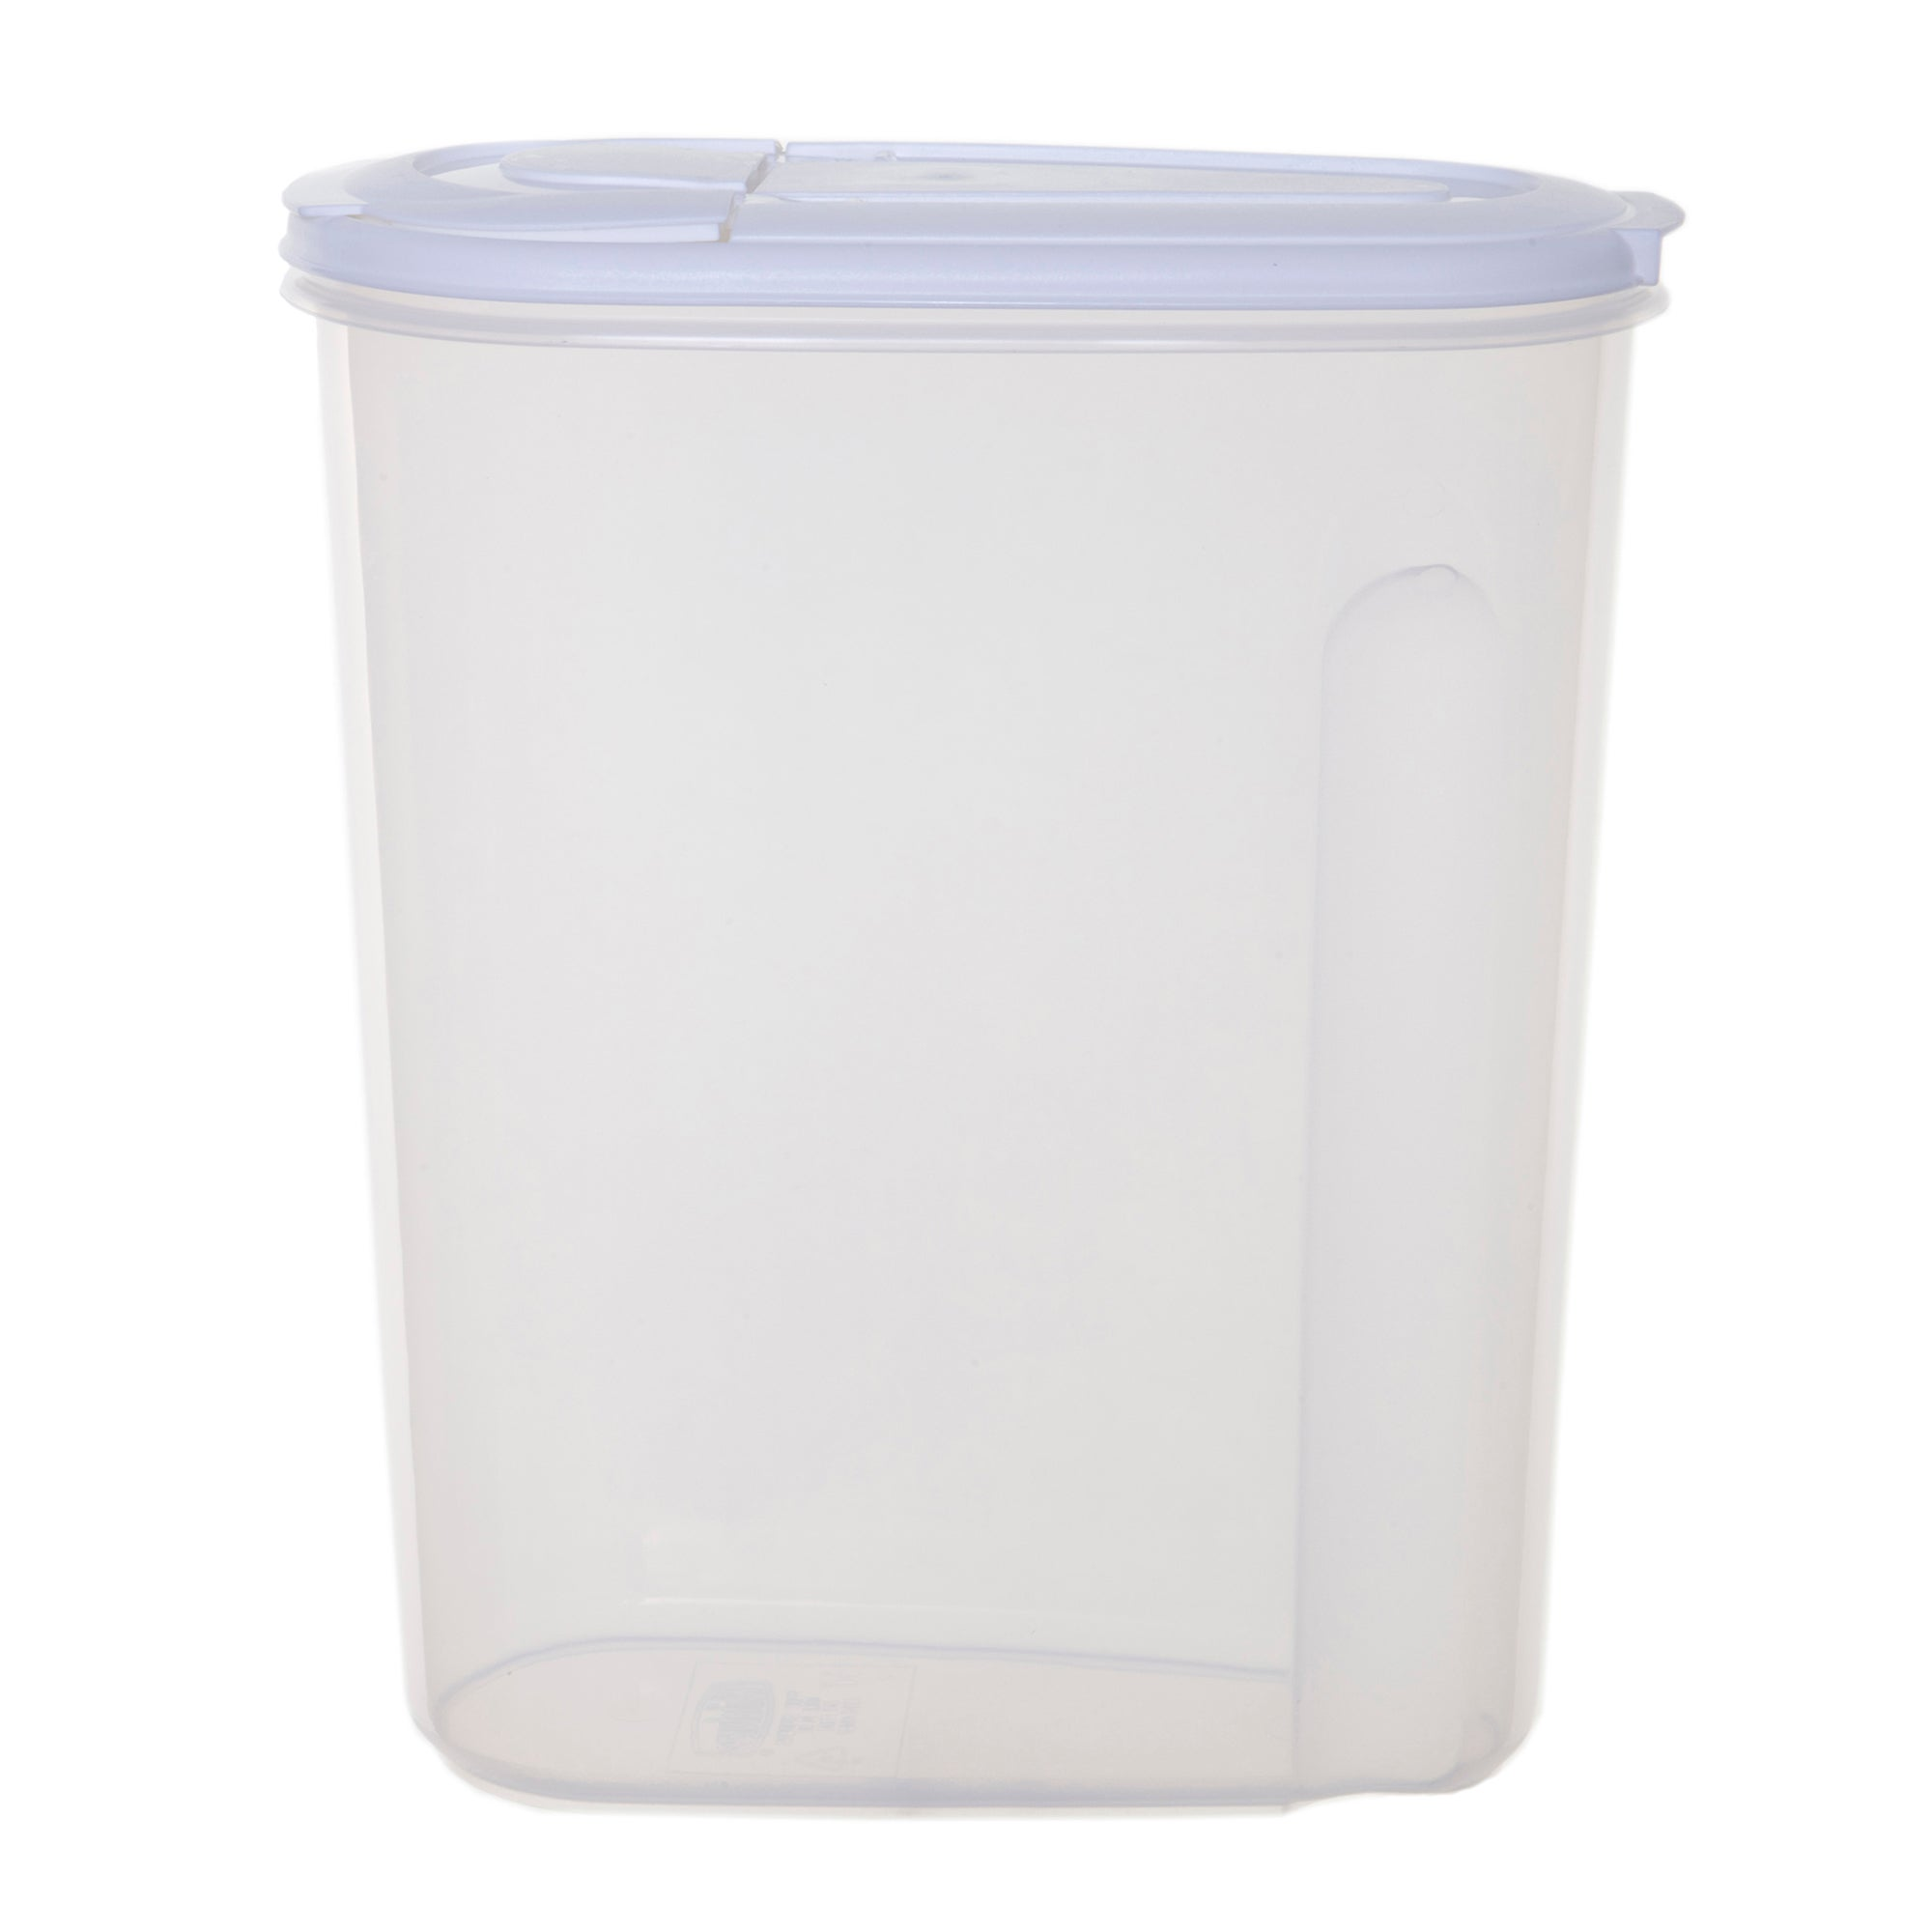 Whitefurze 3 Litre Dry Food Container